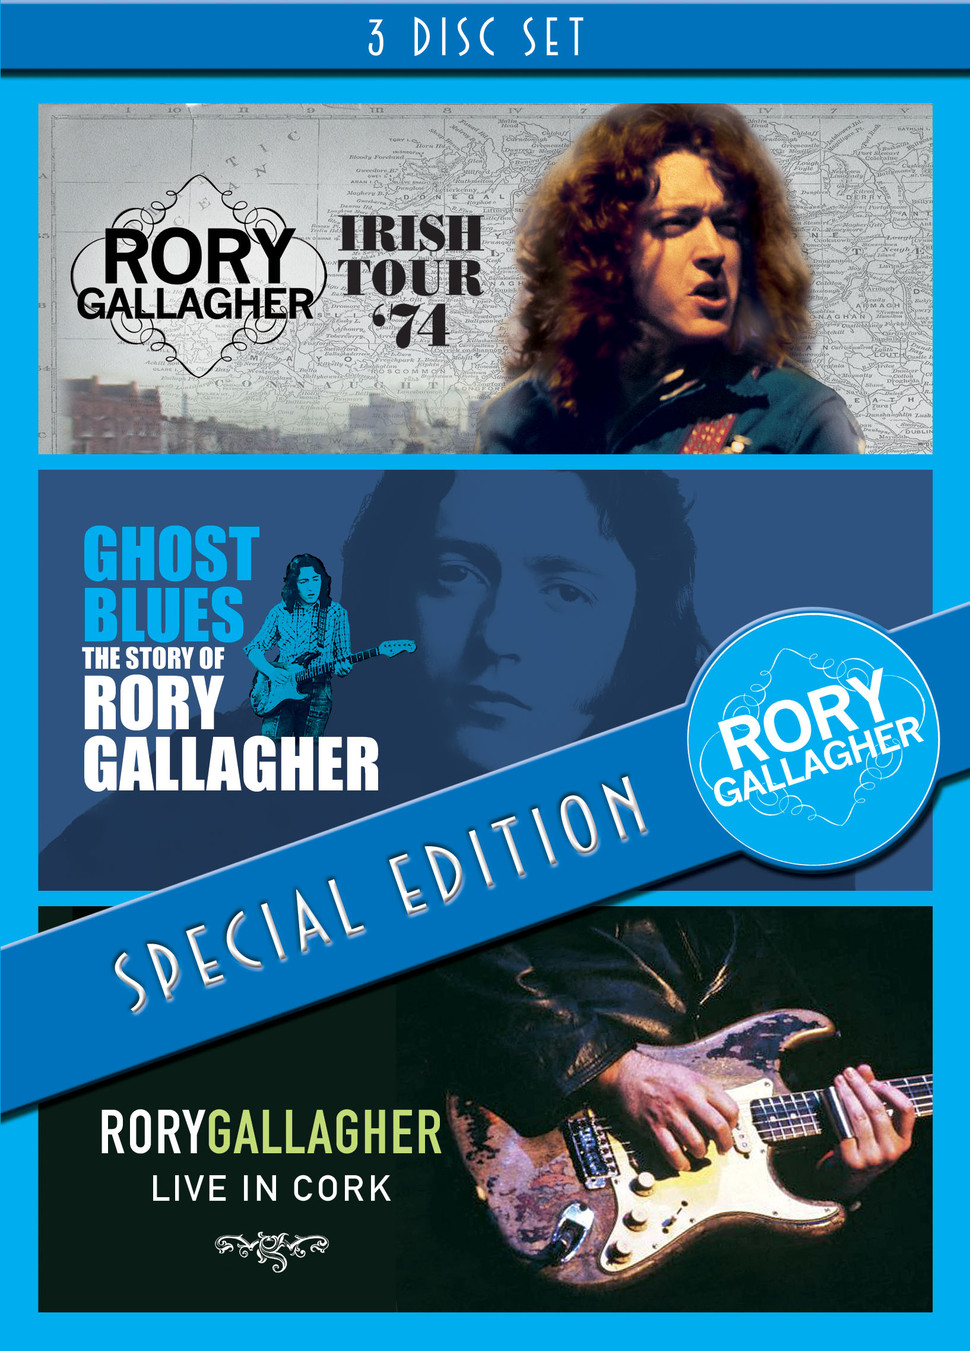 Ghost Blues-The Rory Gallagher Documentary (2010) - Page 5 410518